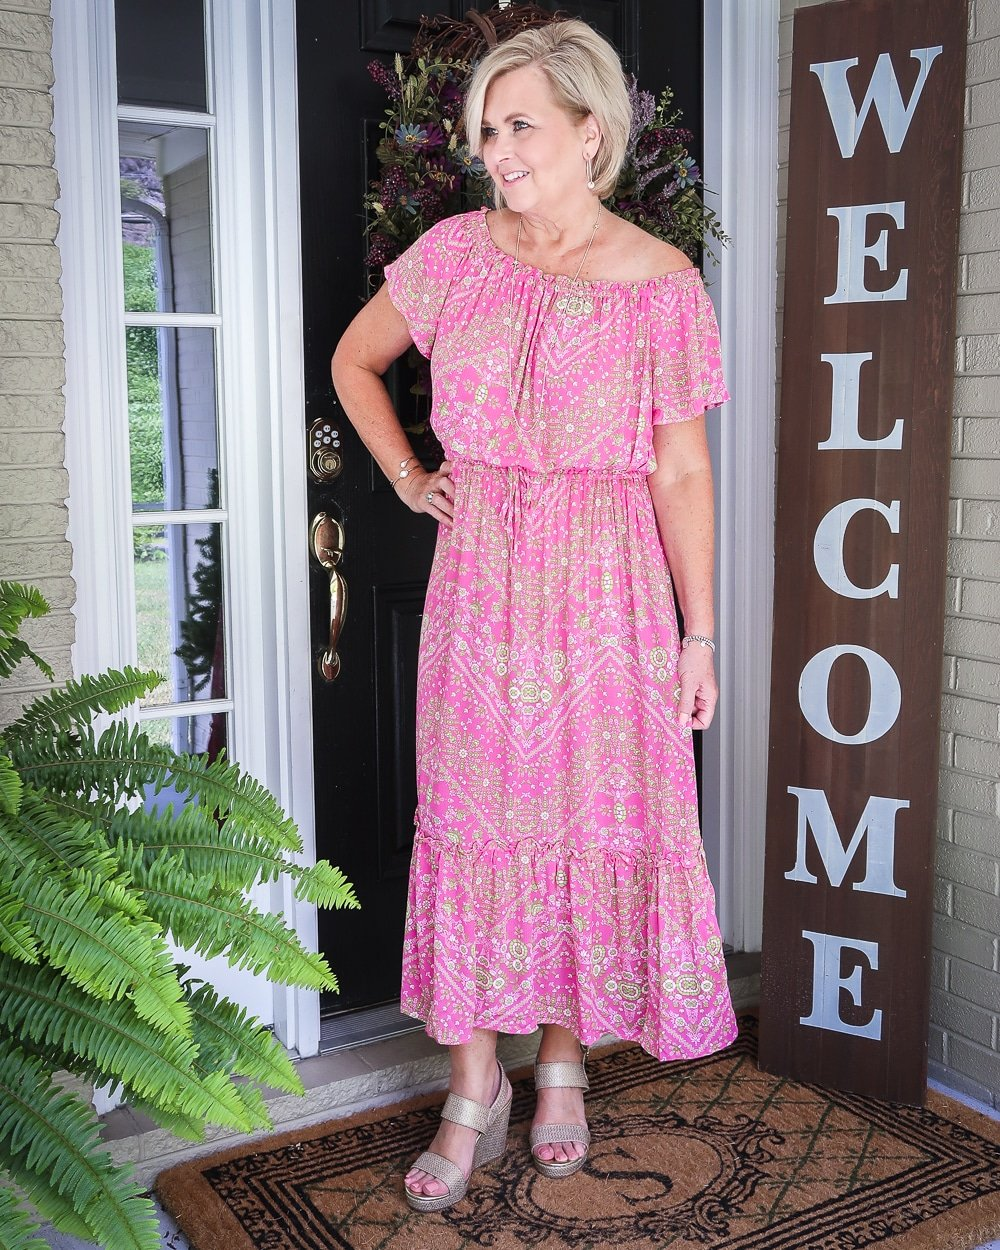 Fashion Blogger 50 Is Not Old is looking to the side and wearing an off the shoulder pink dress with delicate gold jewelry and gold wedge espadrilles